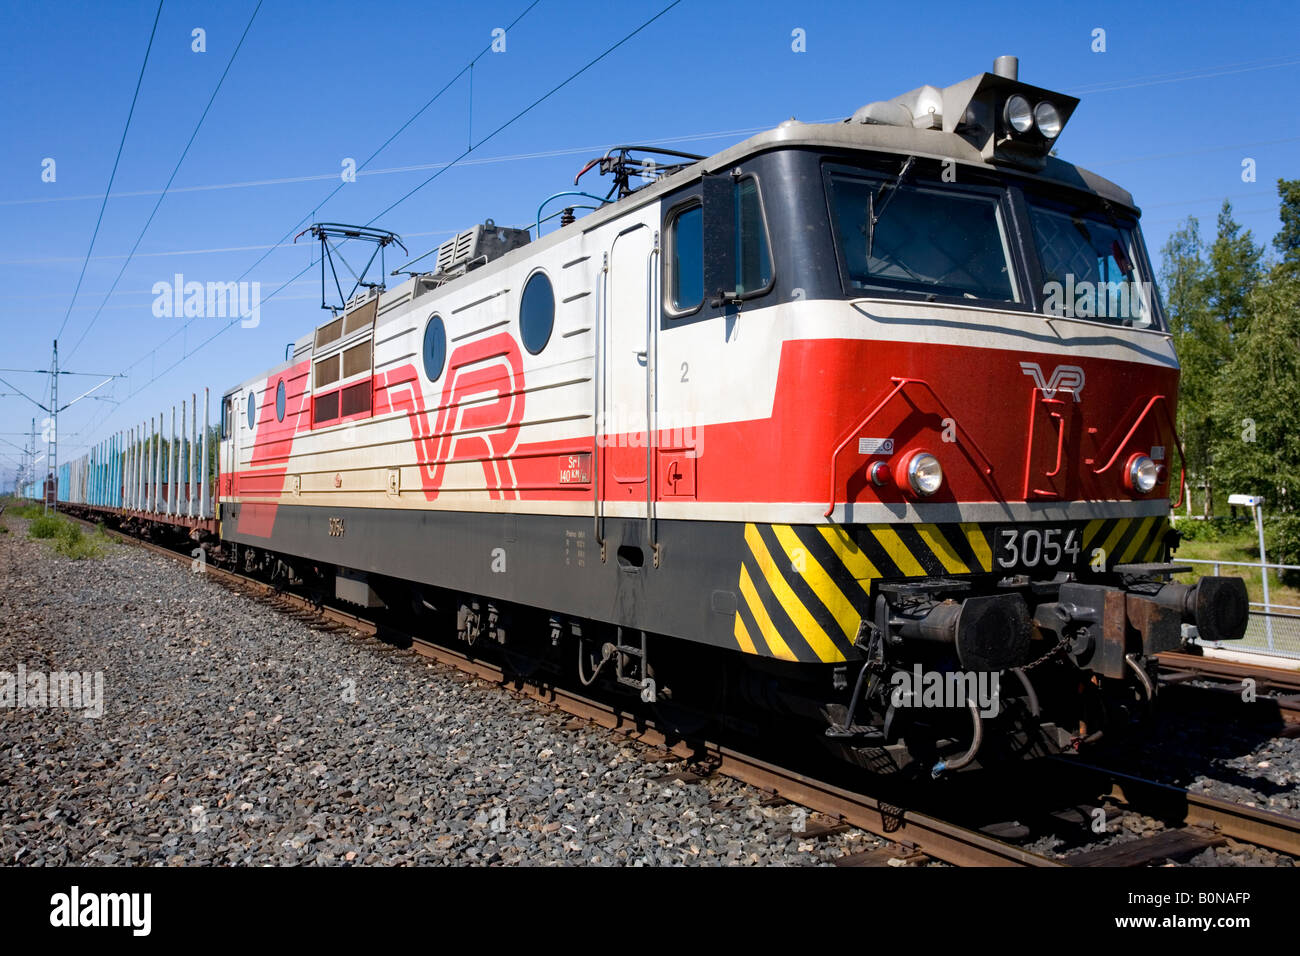 Cargo train with electric locomotive owned by VR , Finland Stock Photo, Royalty Free Image ...